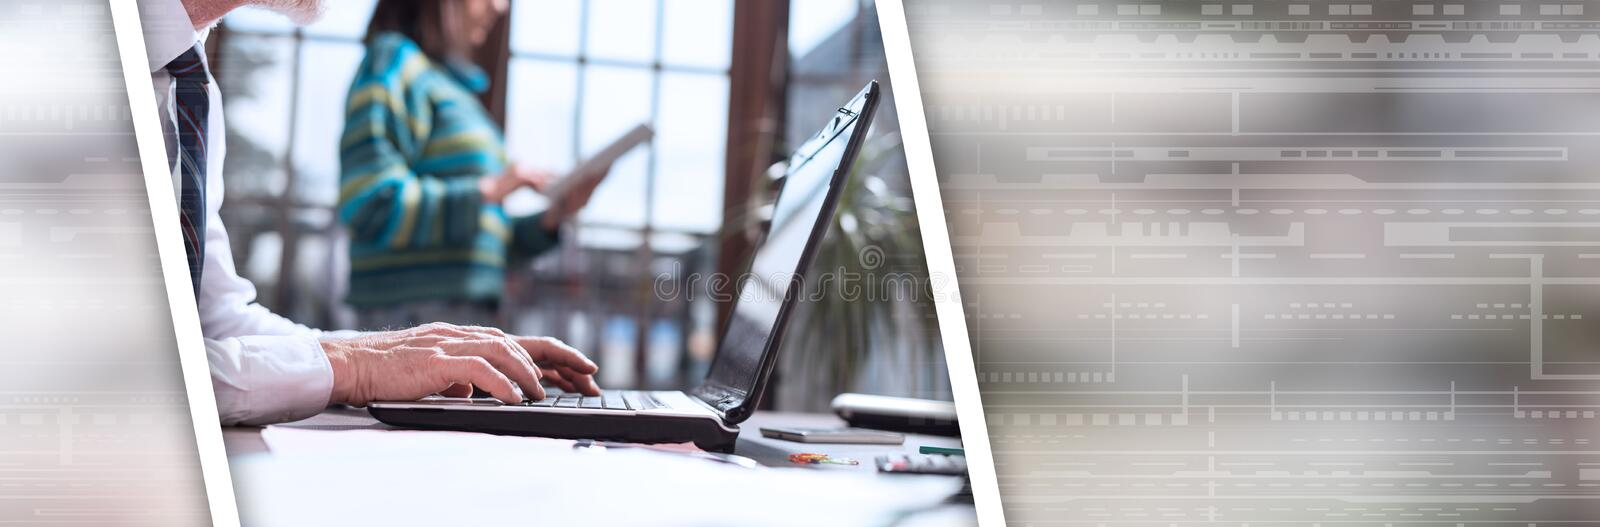 Businessman working on laptop. panoramic banner. Businessman working on laptop in office. panoramic banner royalty free stock images